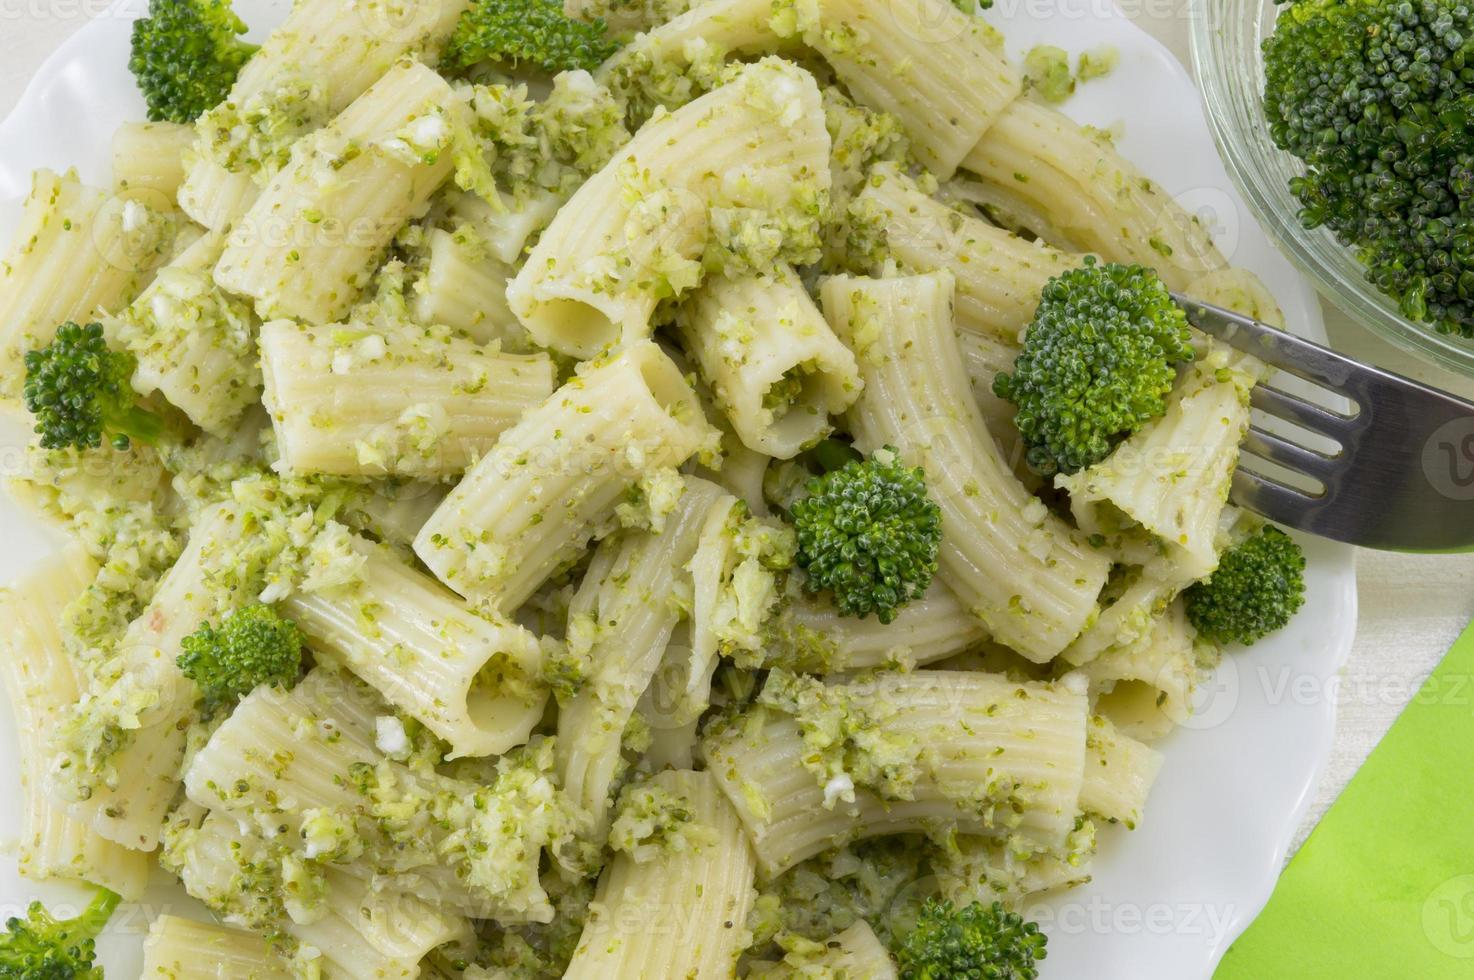 Pasta with broccoli served with cooked broccoli close up photo